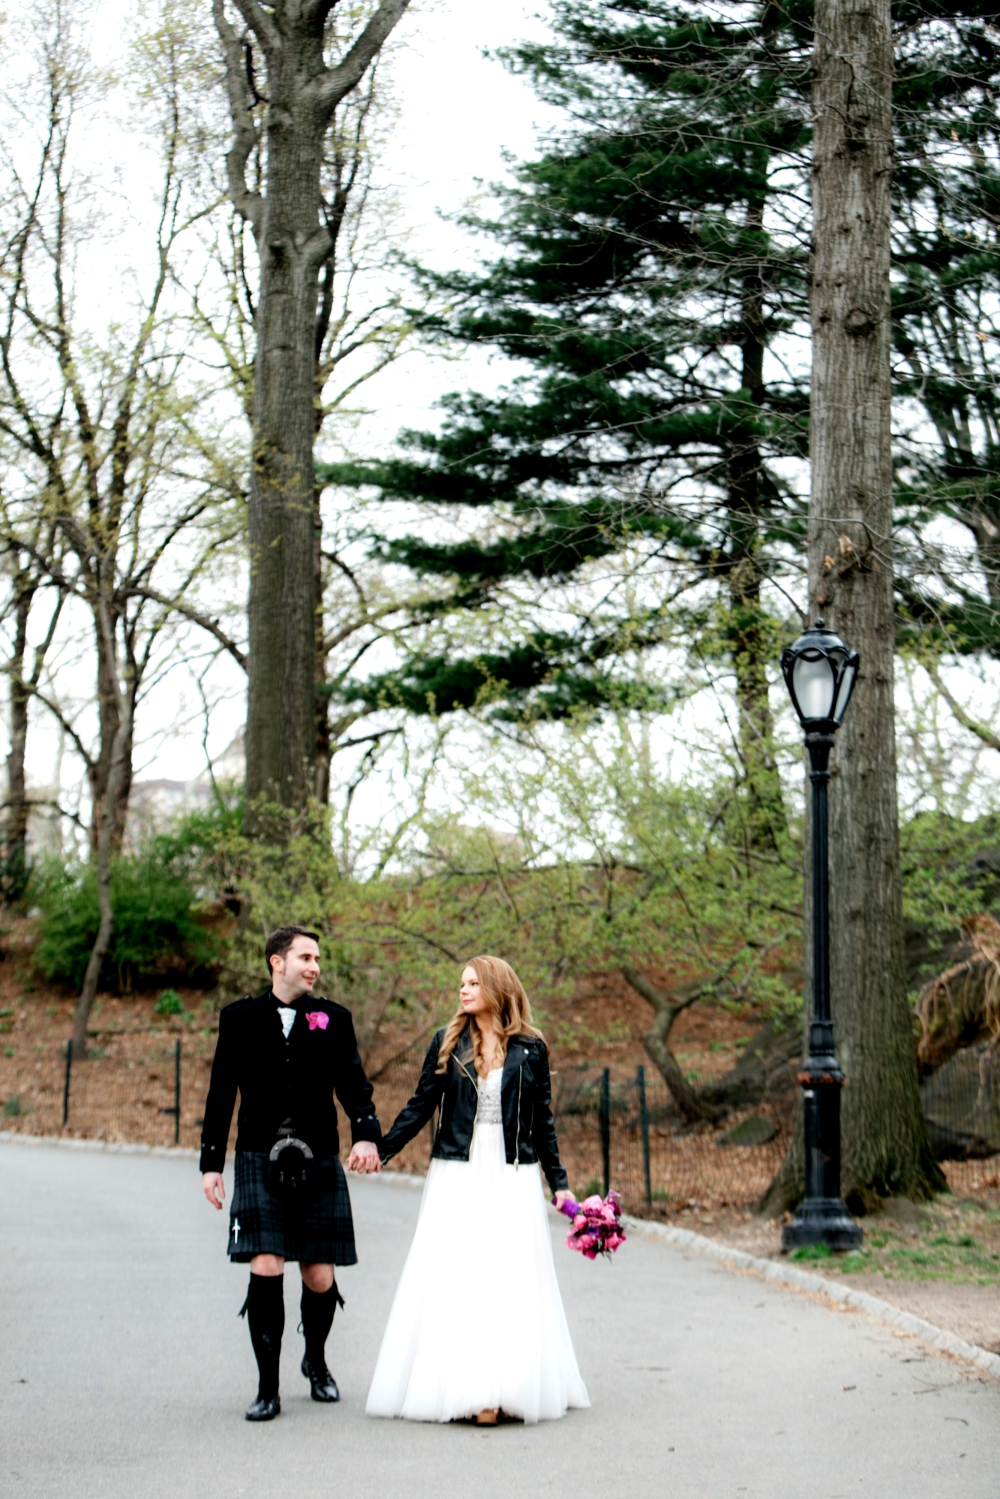 620LoftGarden_wedding_CJ-392